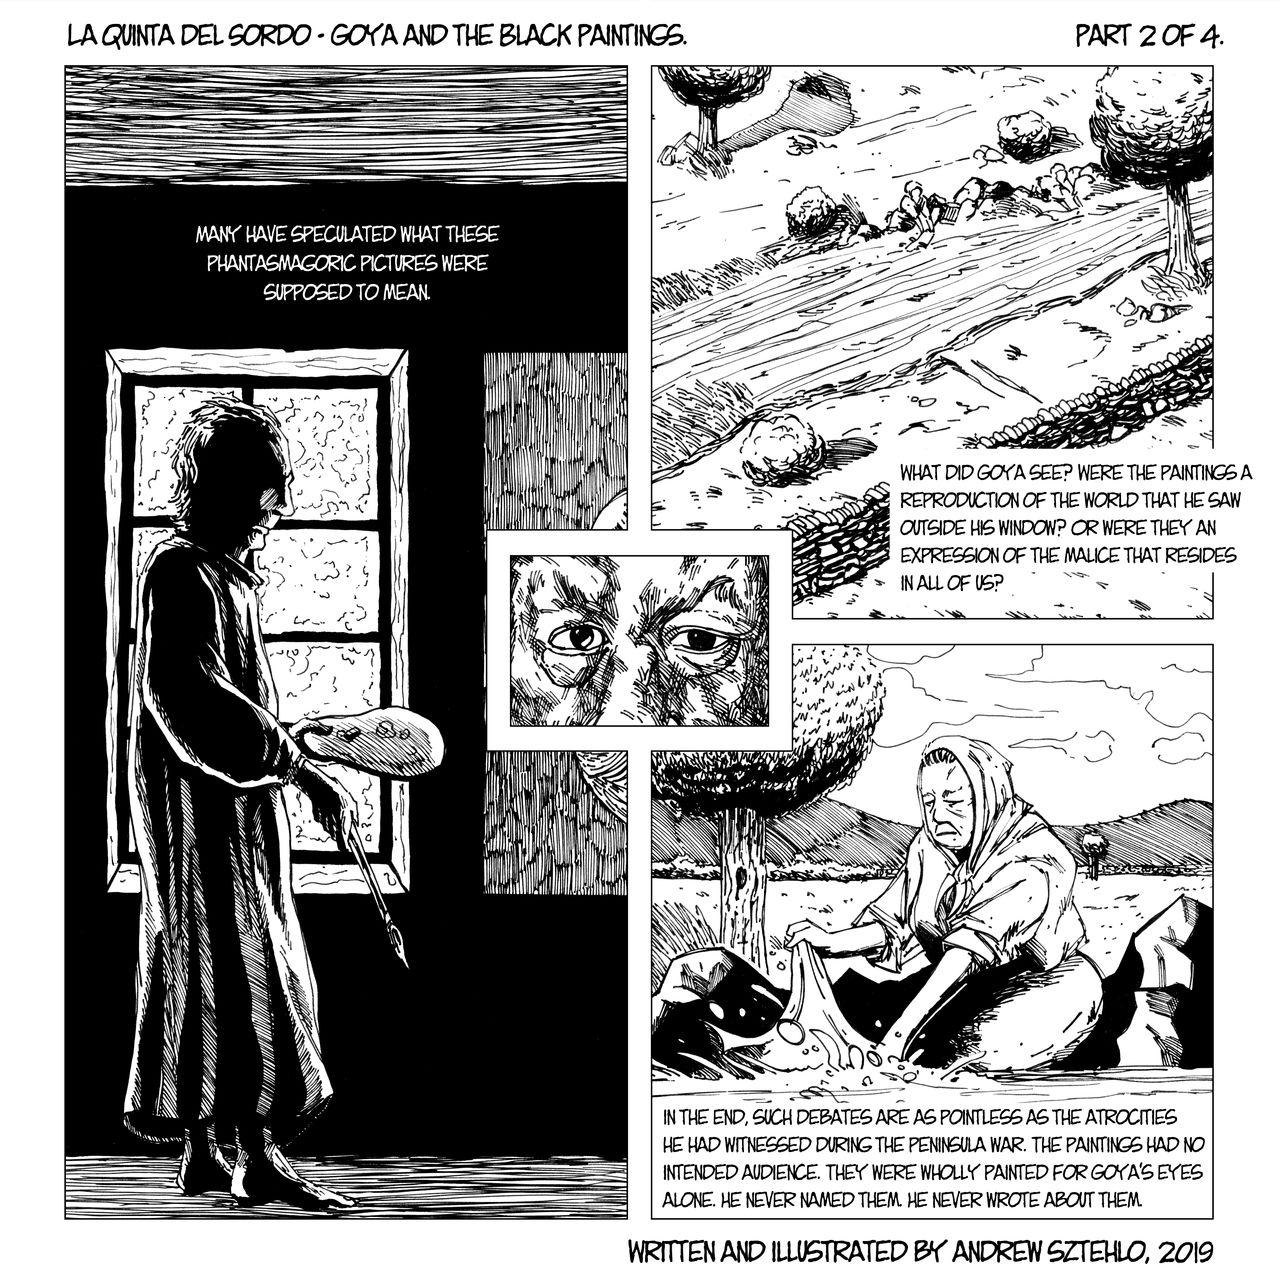 Black and white line drawing. Webcomic in a square format with a few panels arranged around a central pair of glaring eyes. Half of the visuals depict an older man inside a dark house holding a paintbrush and palette. The other half show the views he saw out the window of a river with a woman cleaning linen in it. The words provoke thought about Goya's paintings in the house. No one else saw them, they were painted for his eyes alone. What did they mean?